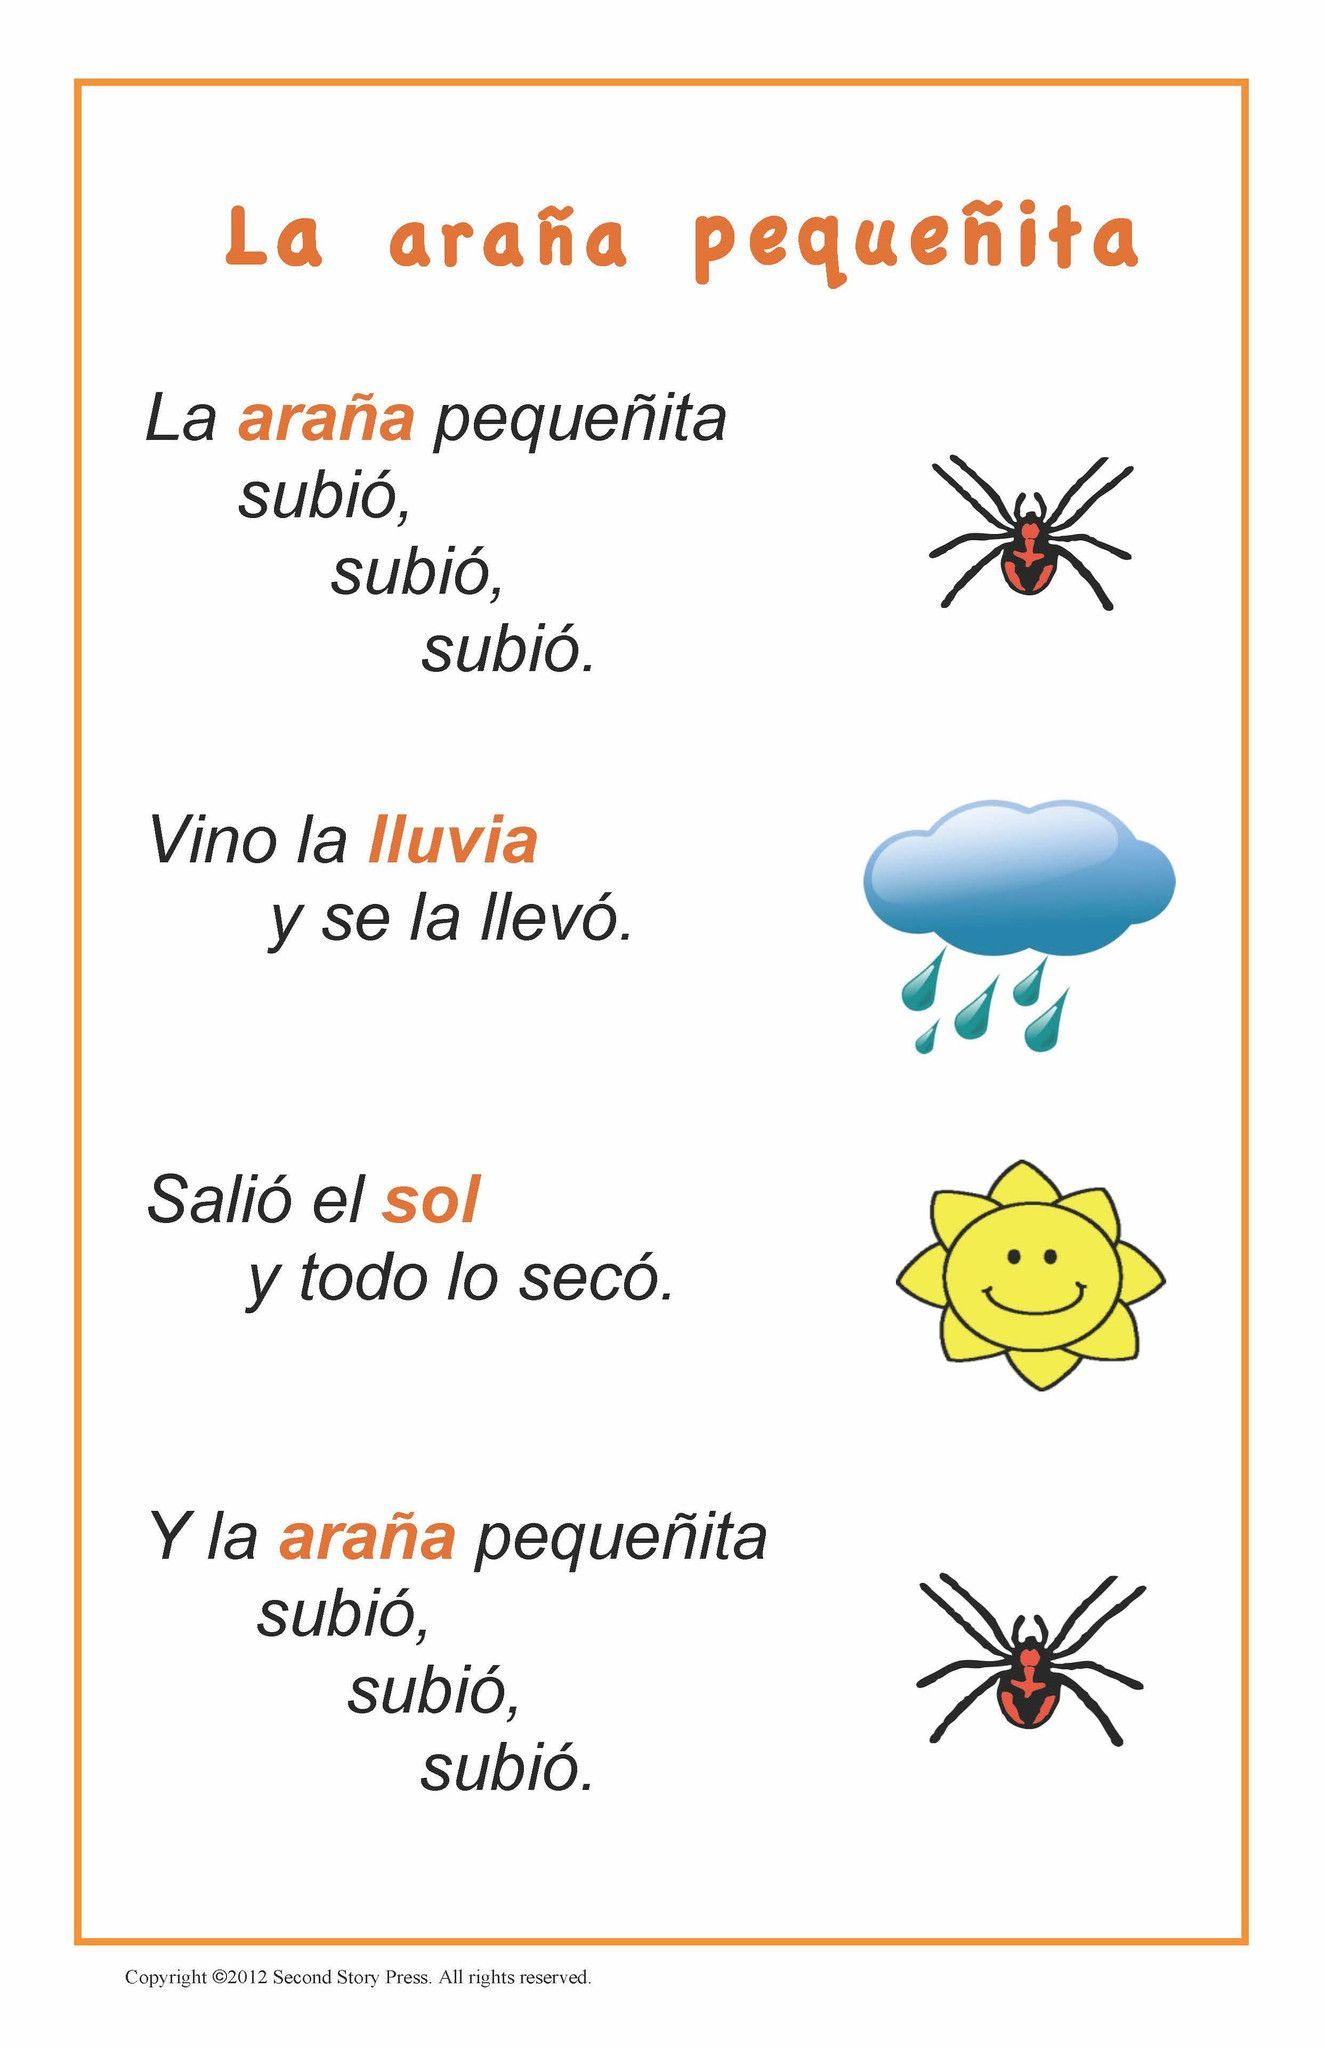 spanish songs and rhymes therapy materials preschool spanish learning spanish spanish songs. Black Bedroom Furniture Sets. Home Design Ideas